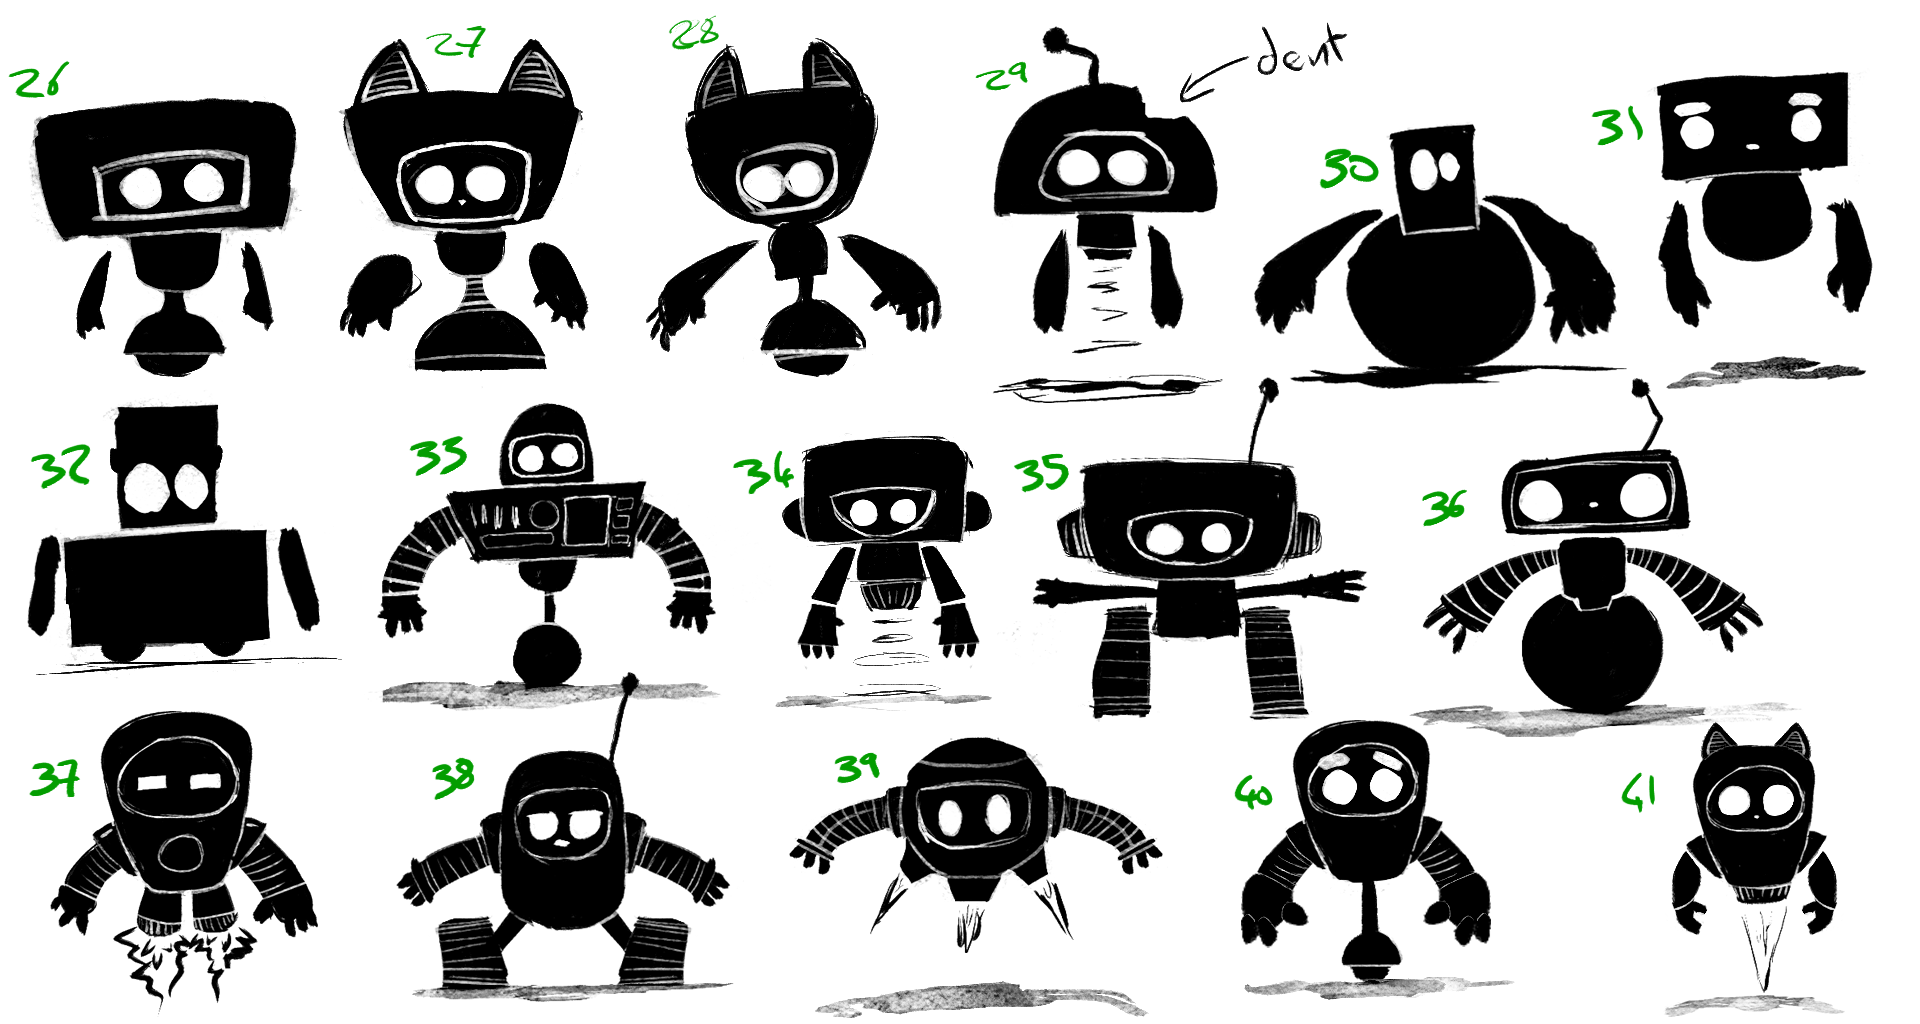 Robot Silhouettes 04.png